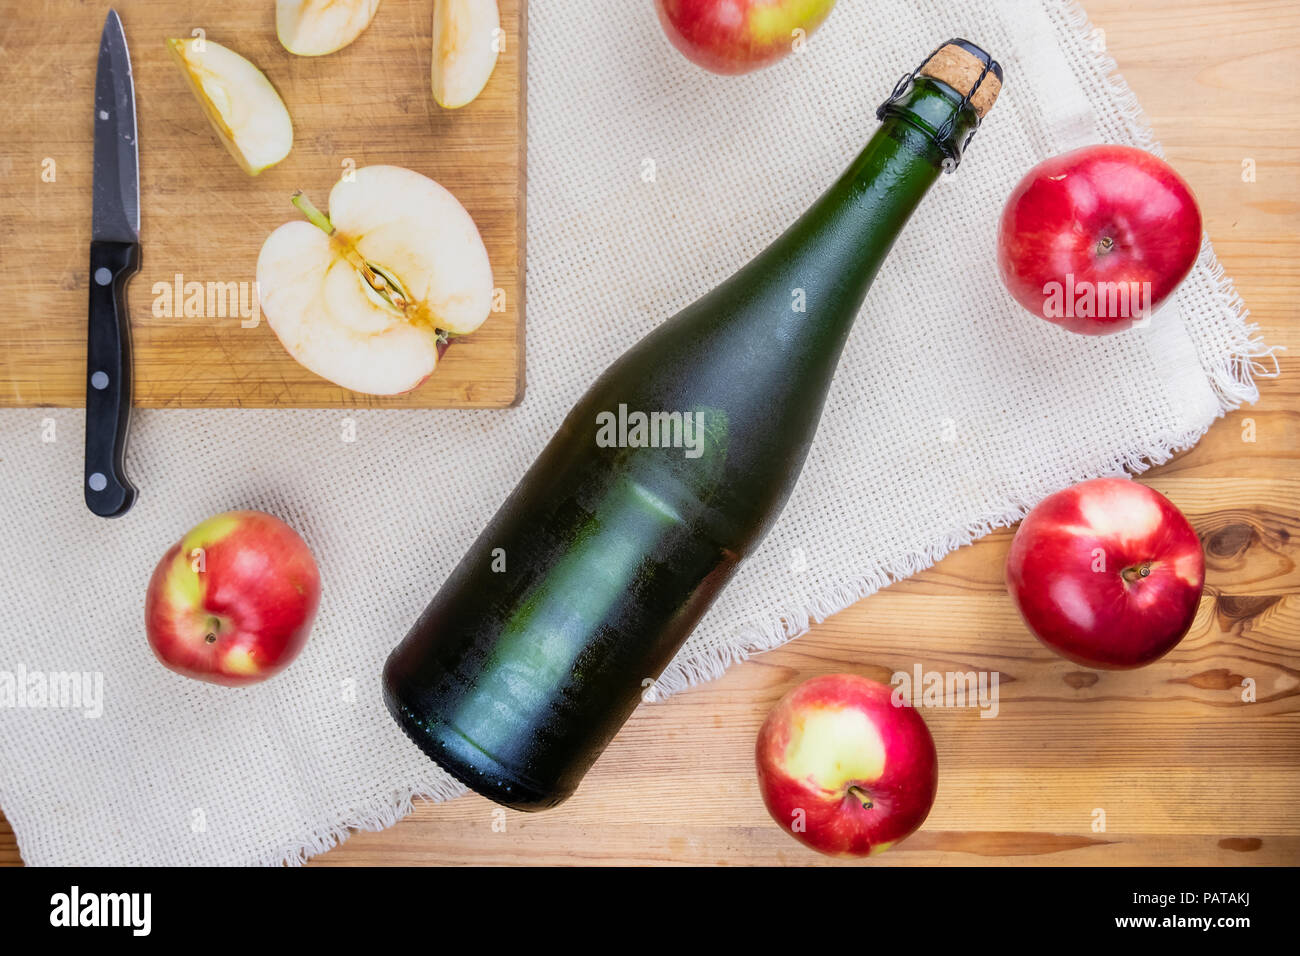 Flat lay with icy cooled corked cidre bottle on rustic wooden table. Top view of premium cider and locally grown organic apples - Stock Image